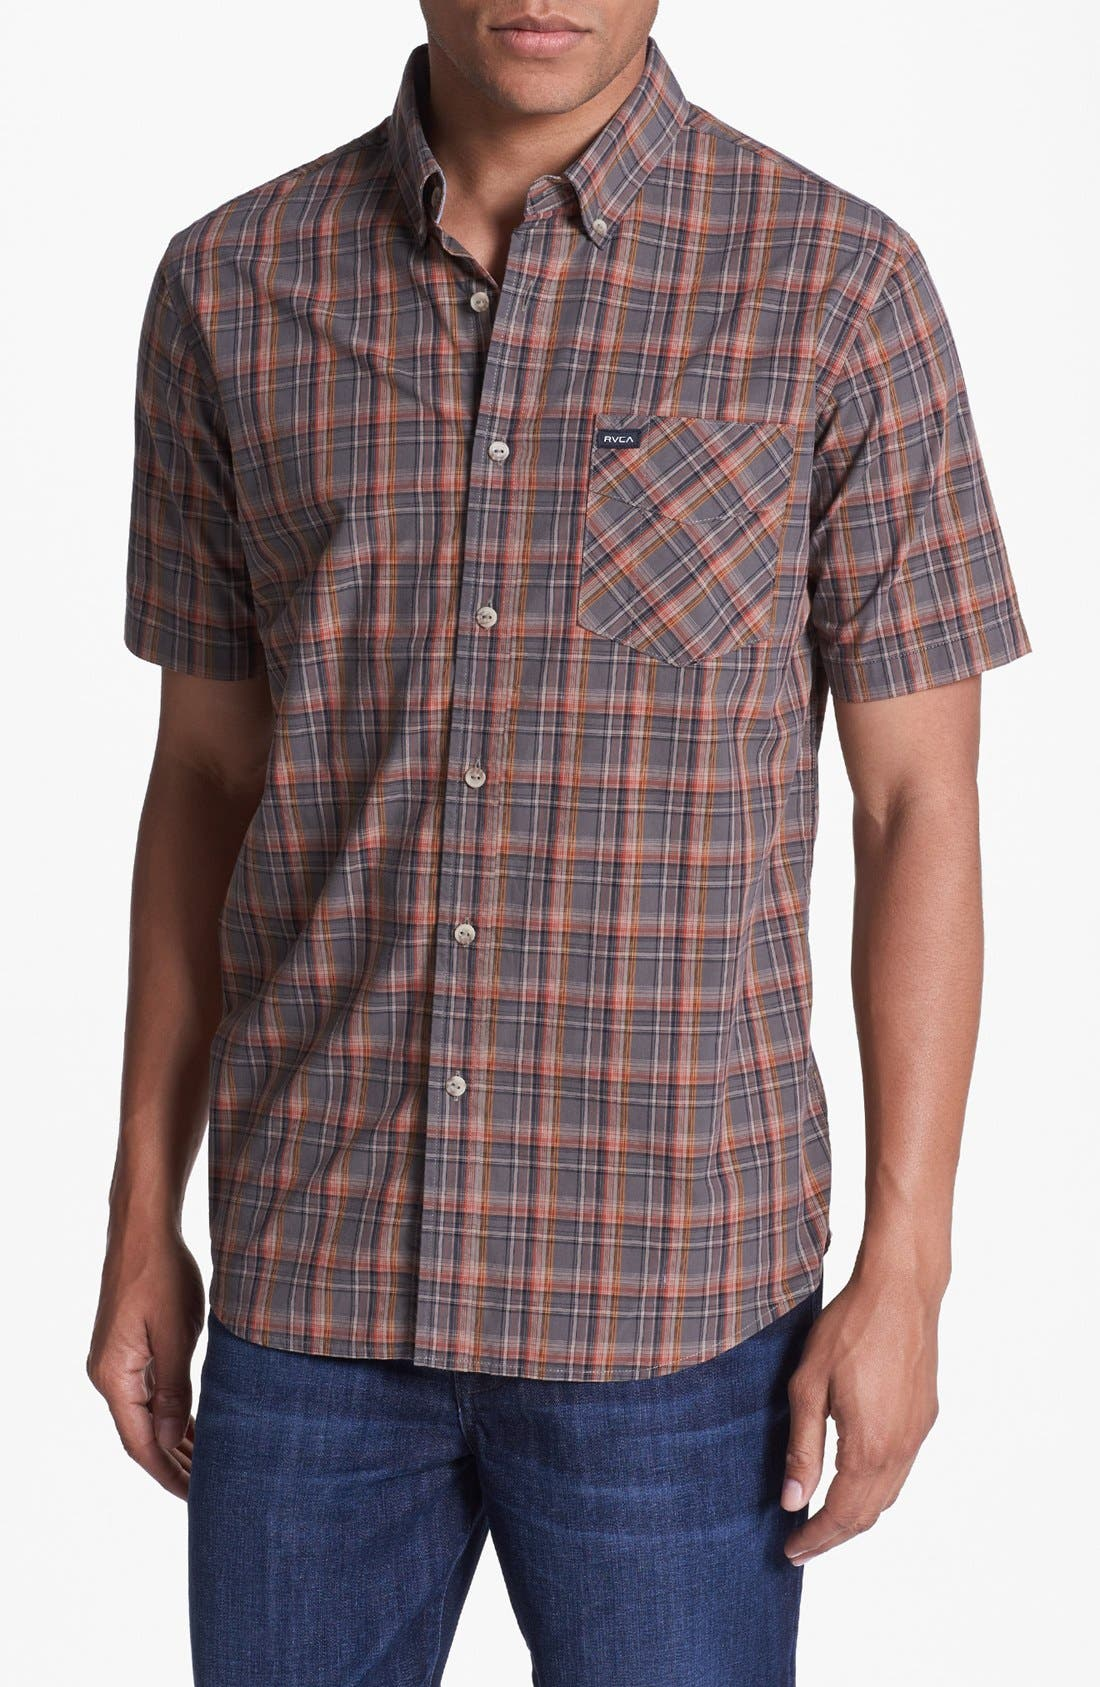 Main Image - RVCA 'Sundown' Short Sleeve Plaid Shirt